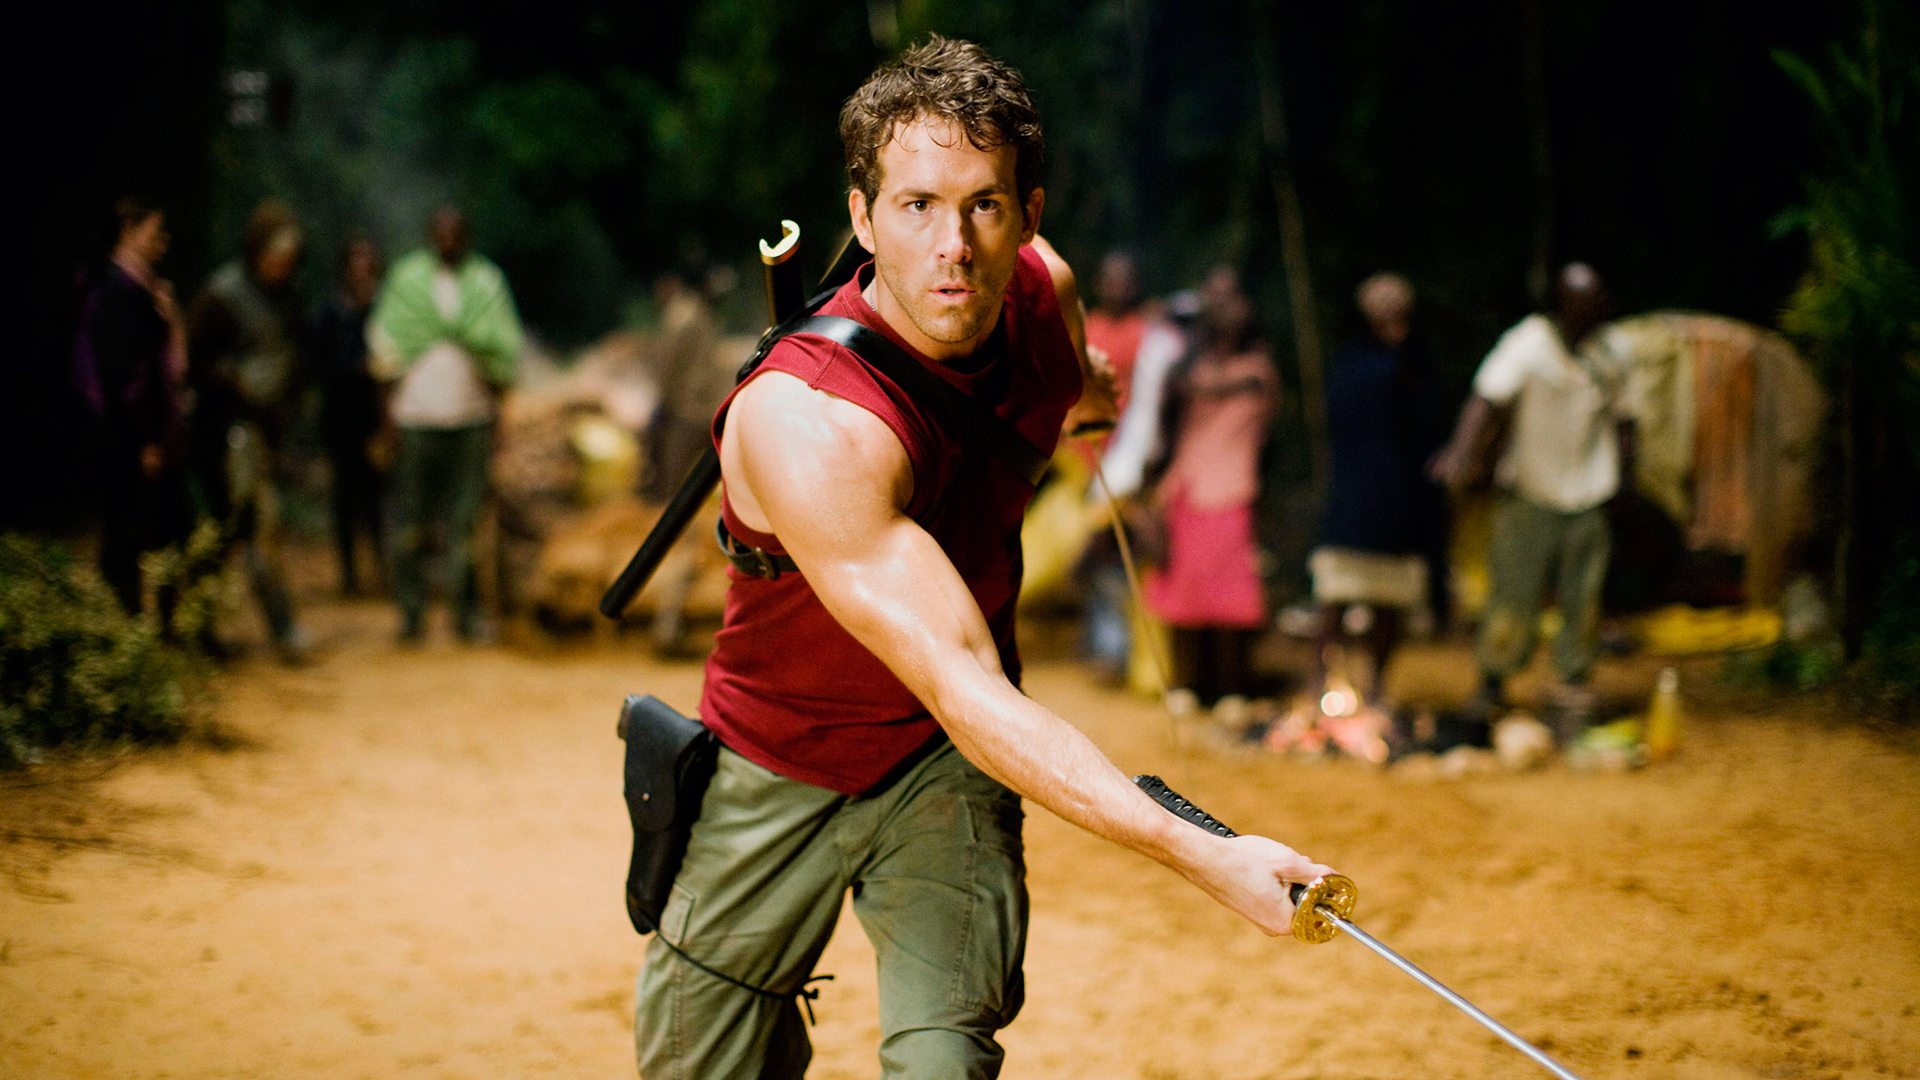 Retronalysis: Ryan Reynolds Was the Least of 'X-Men Origins: Wolverine's Problems